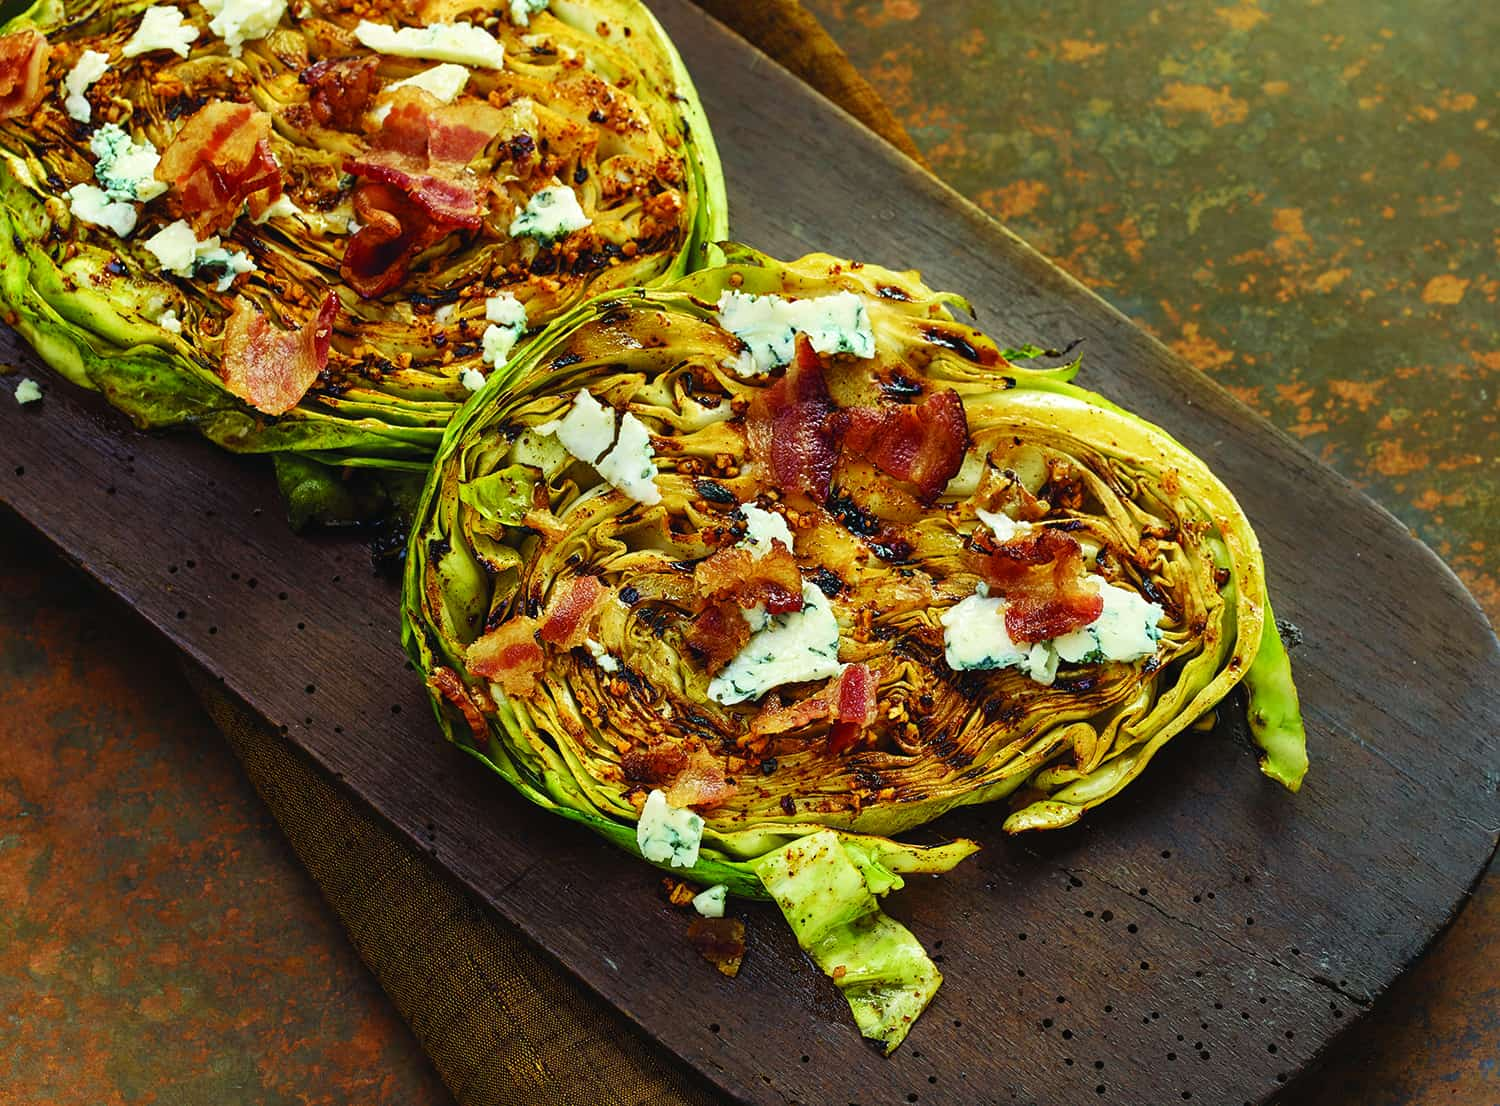 Grilled Cabbage Steaks with Bacon and Blue Cheese